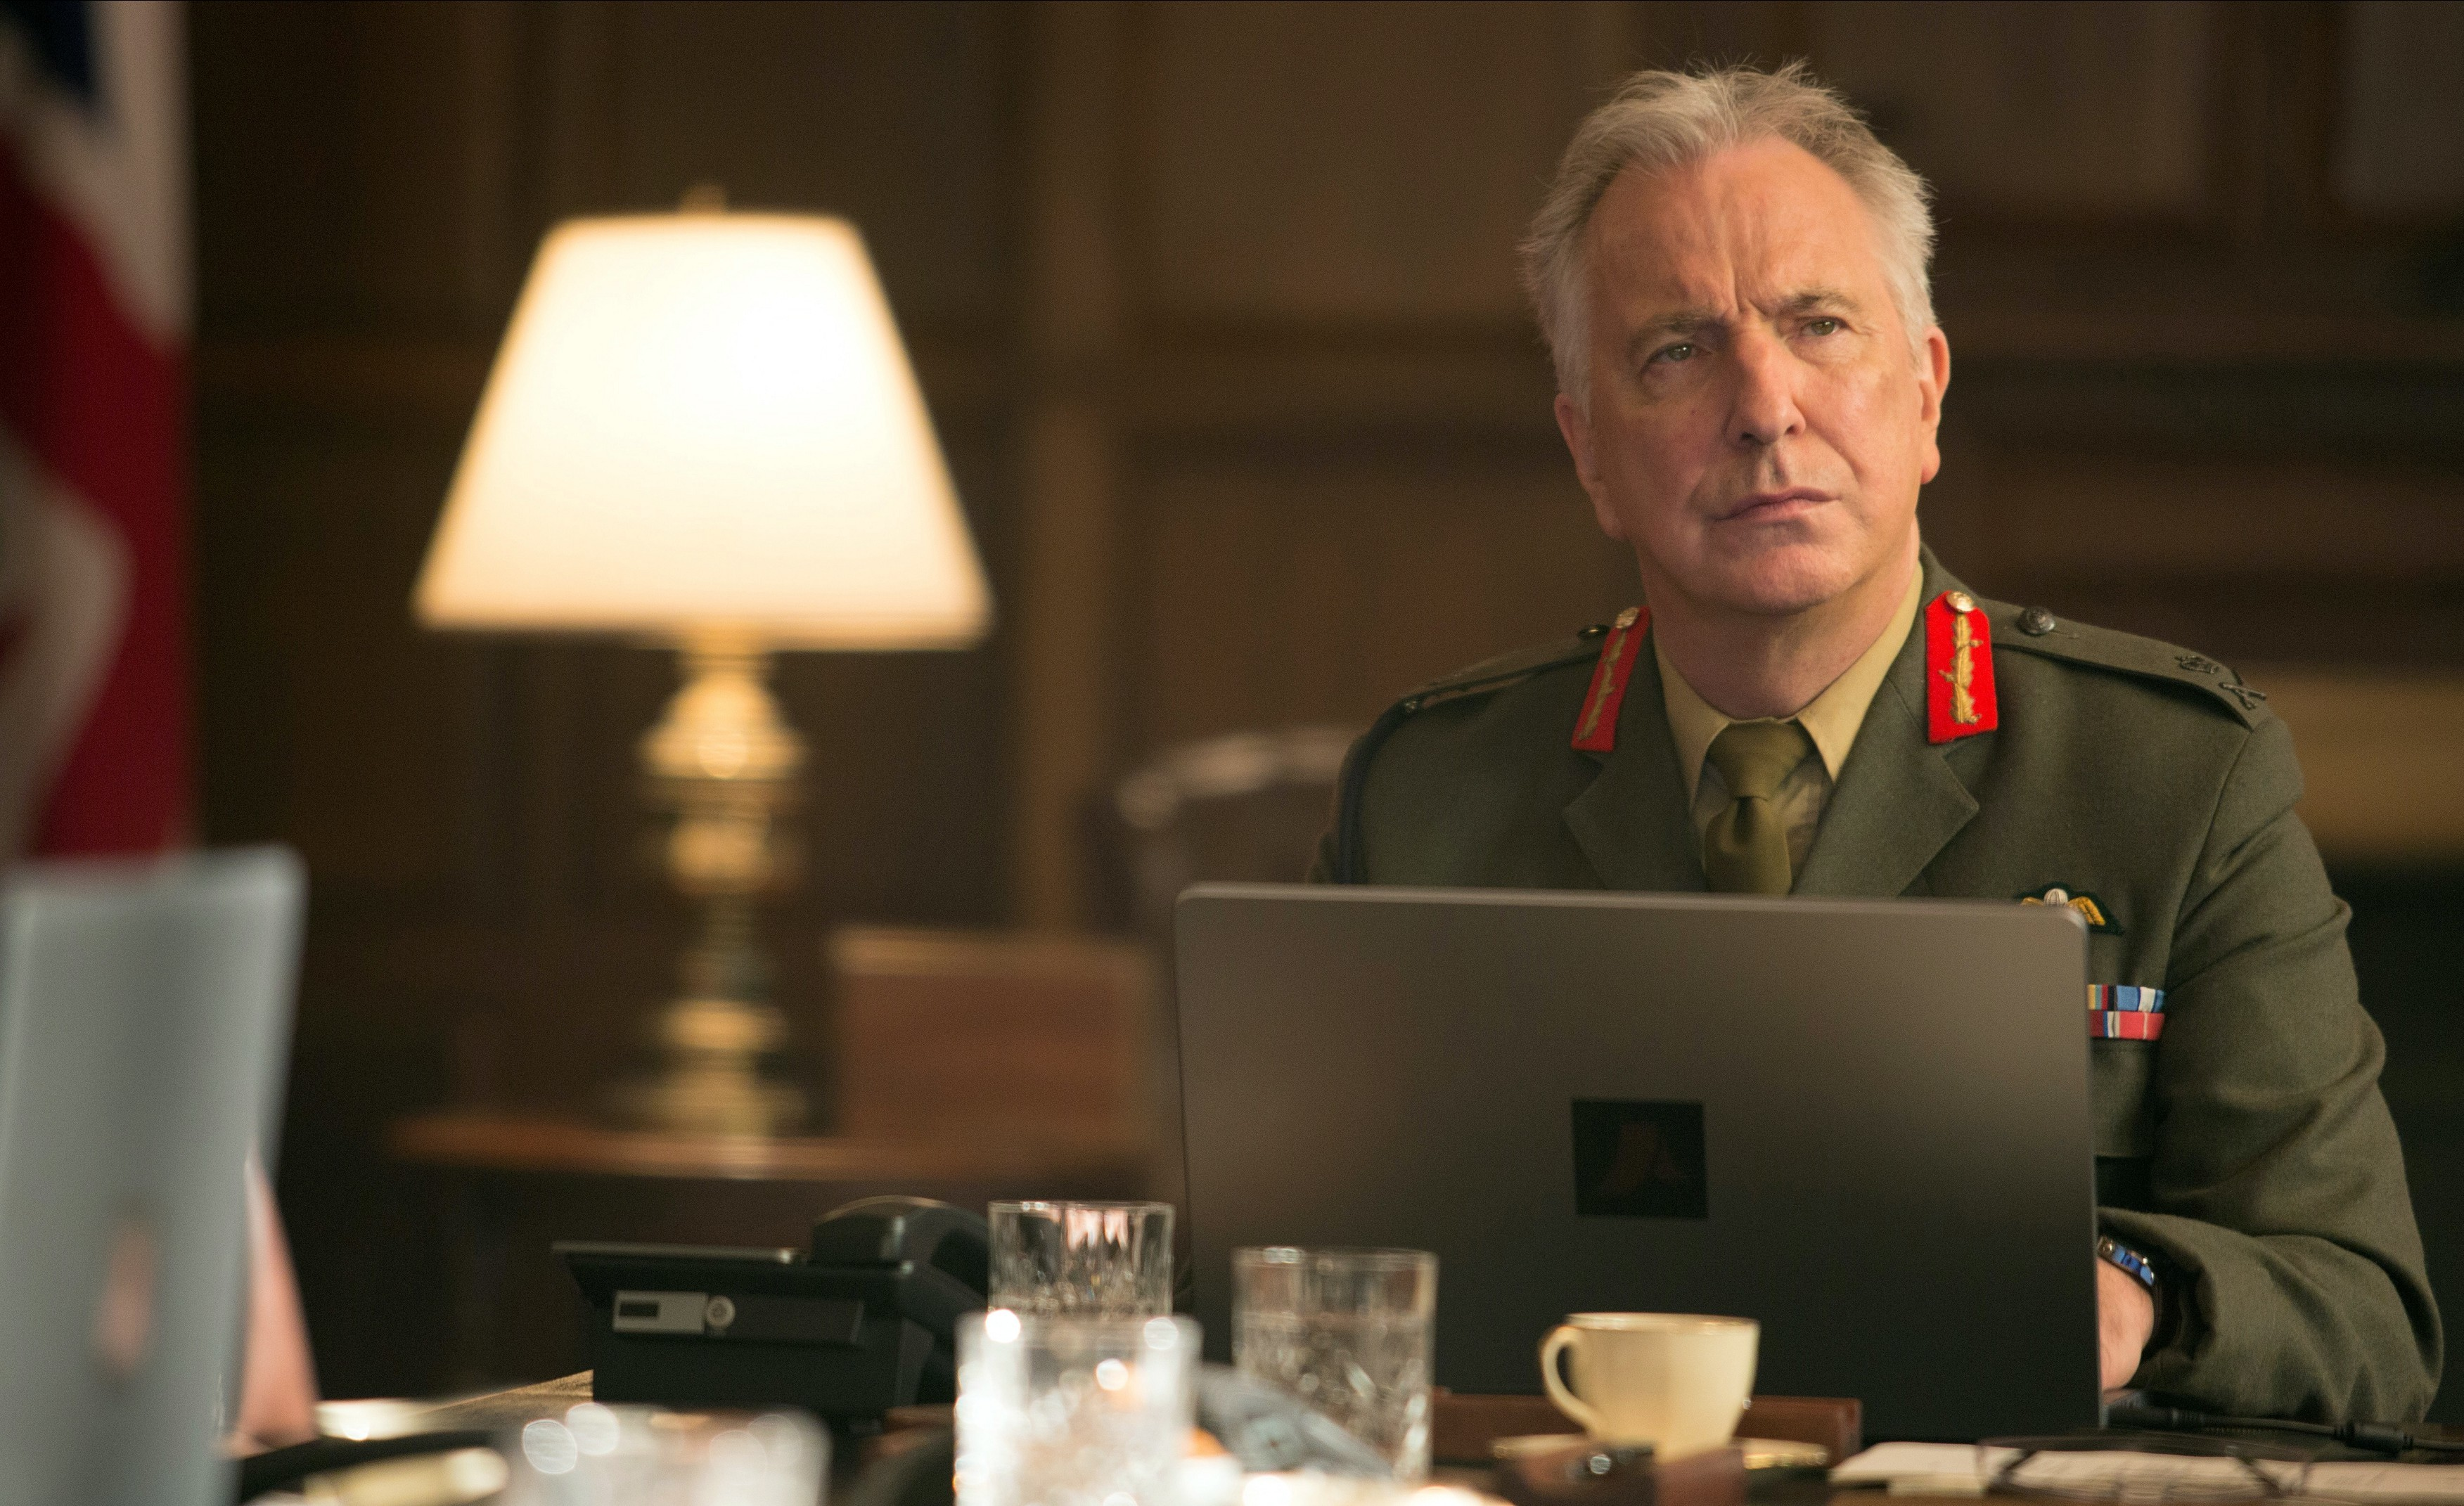 Alan Rickman in Eye in the Sky (Entertainment One Features)